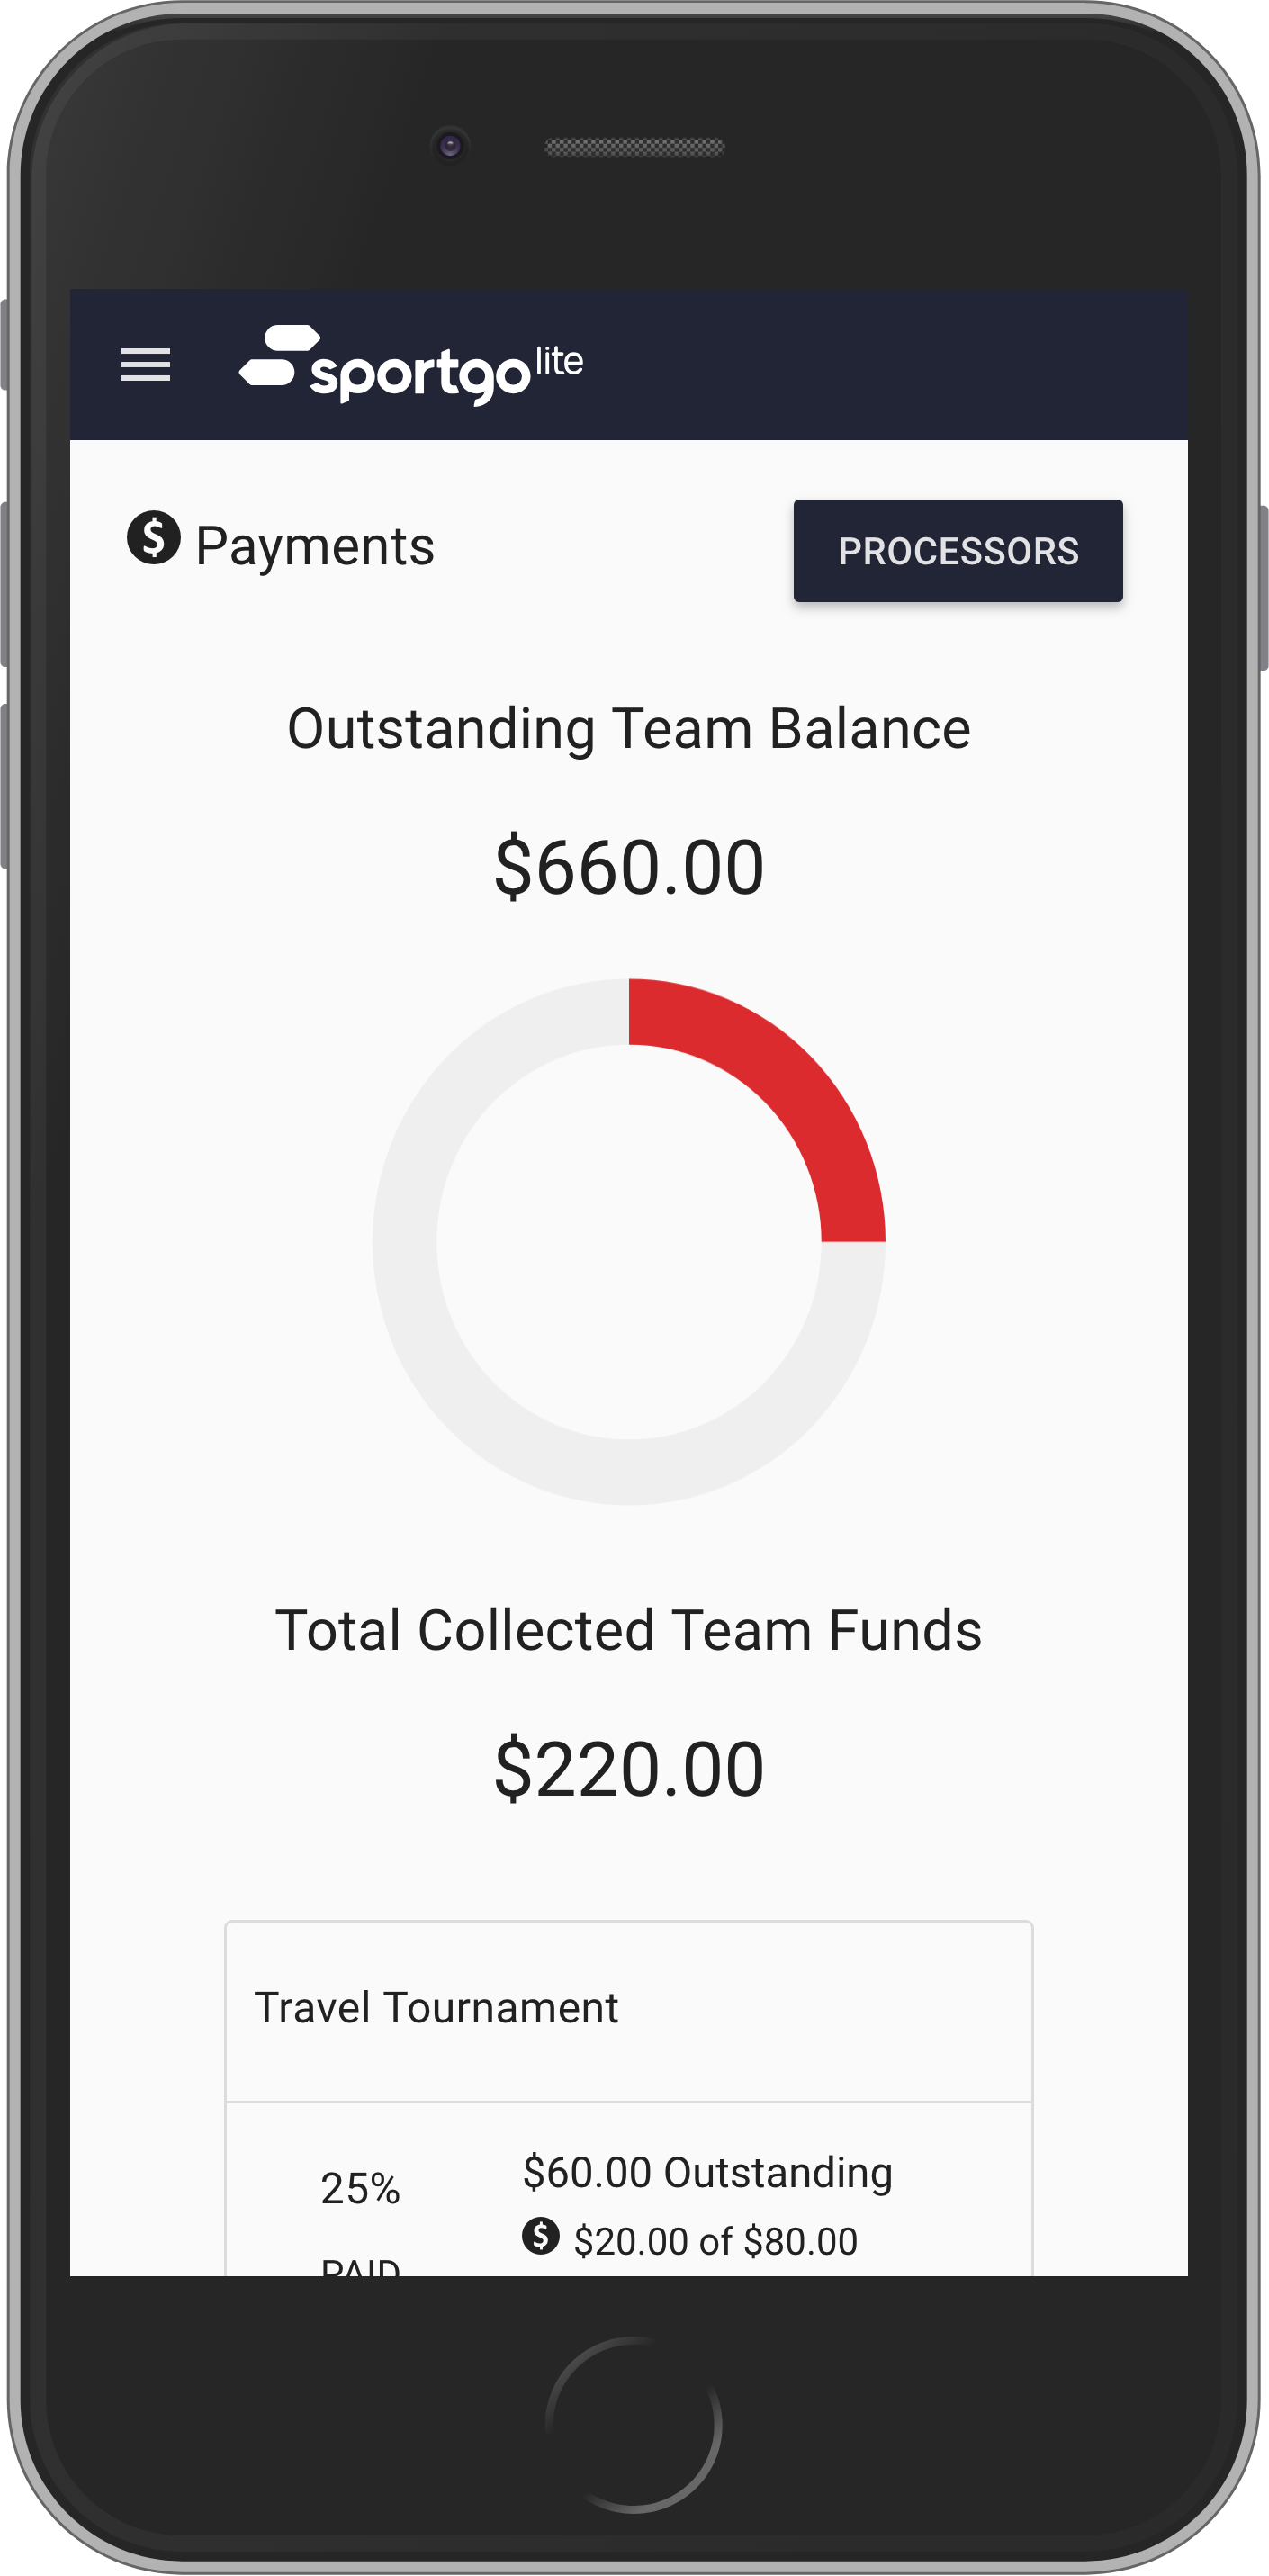 Payment Collection &Tracking - Quickly assign fees, collect and track money from your entire team to avoid last minute payment hassles.